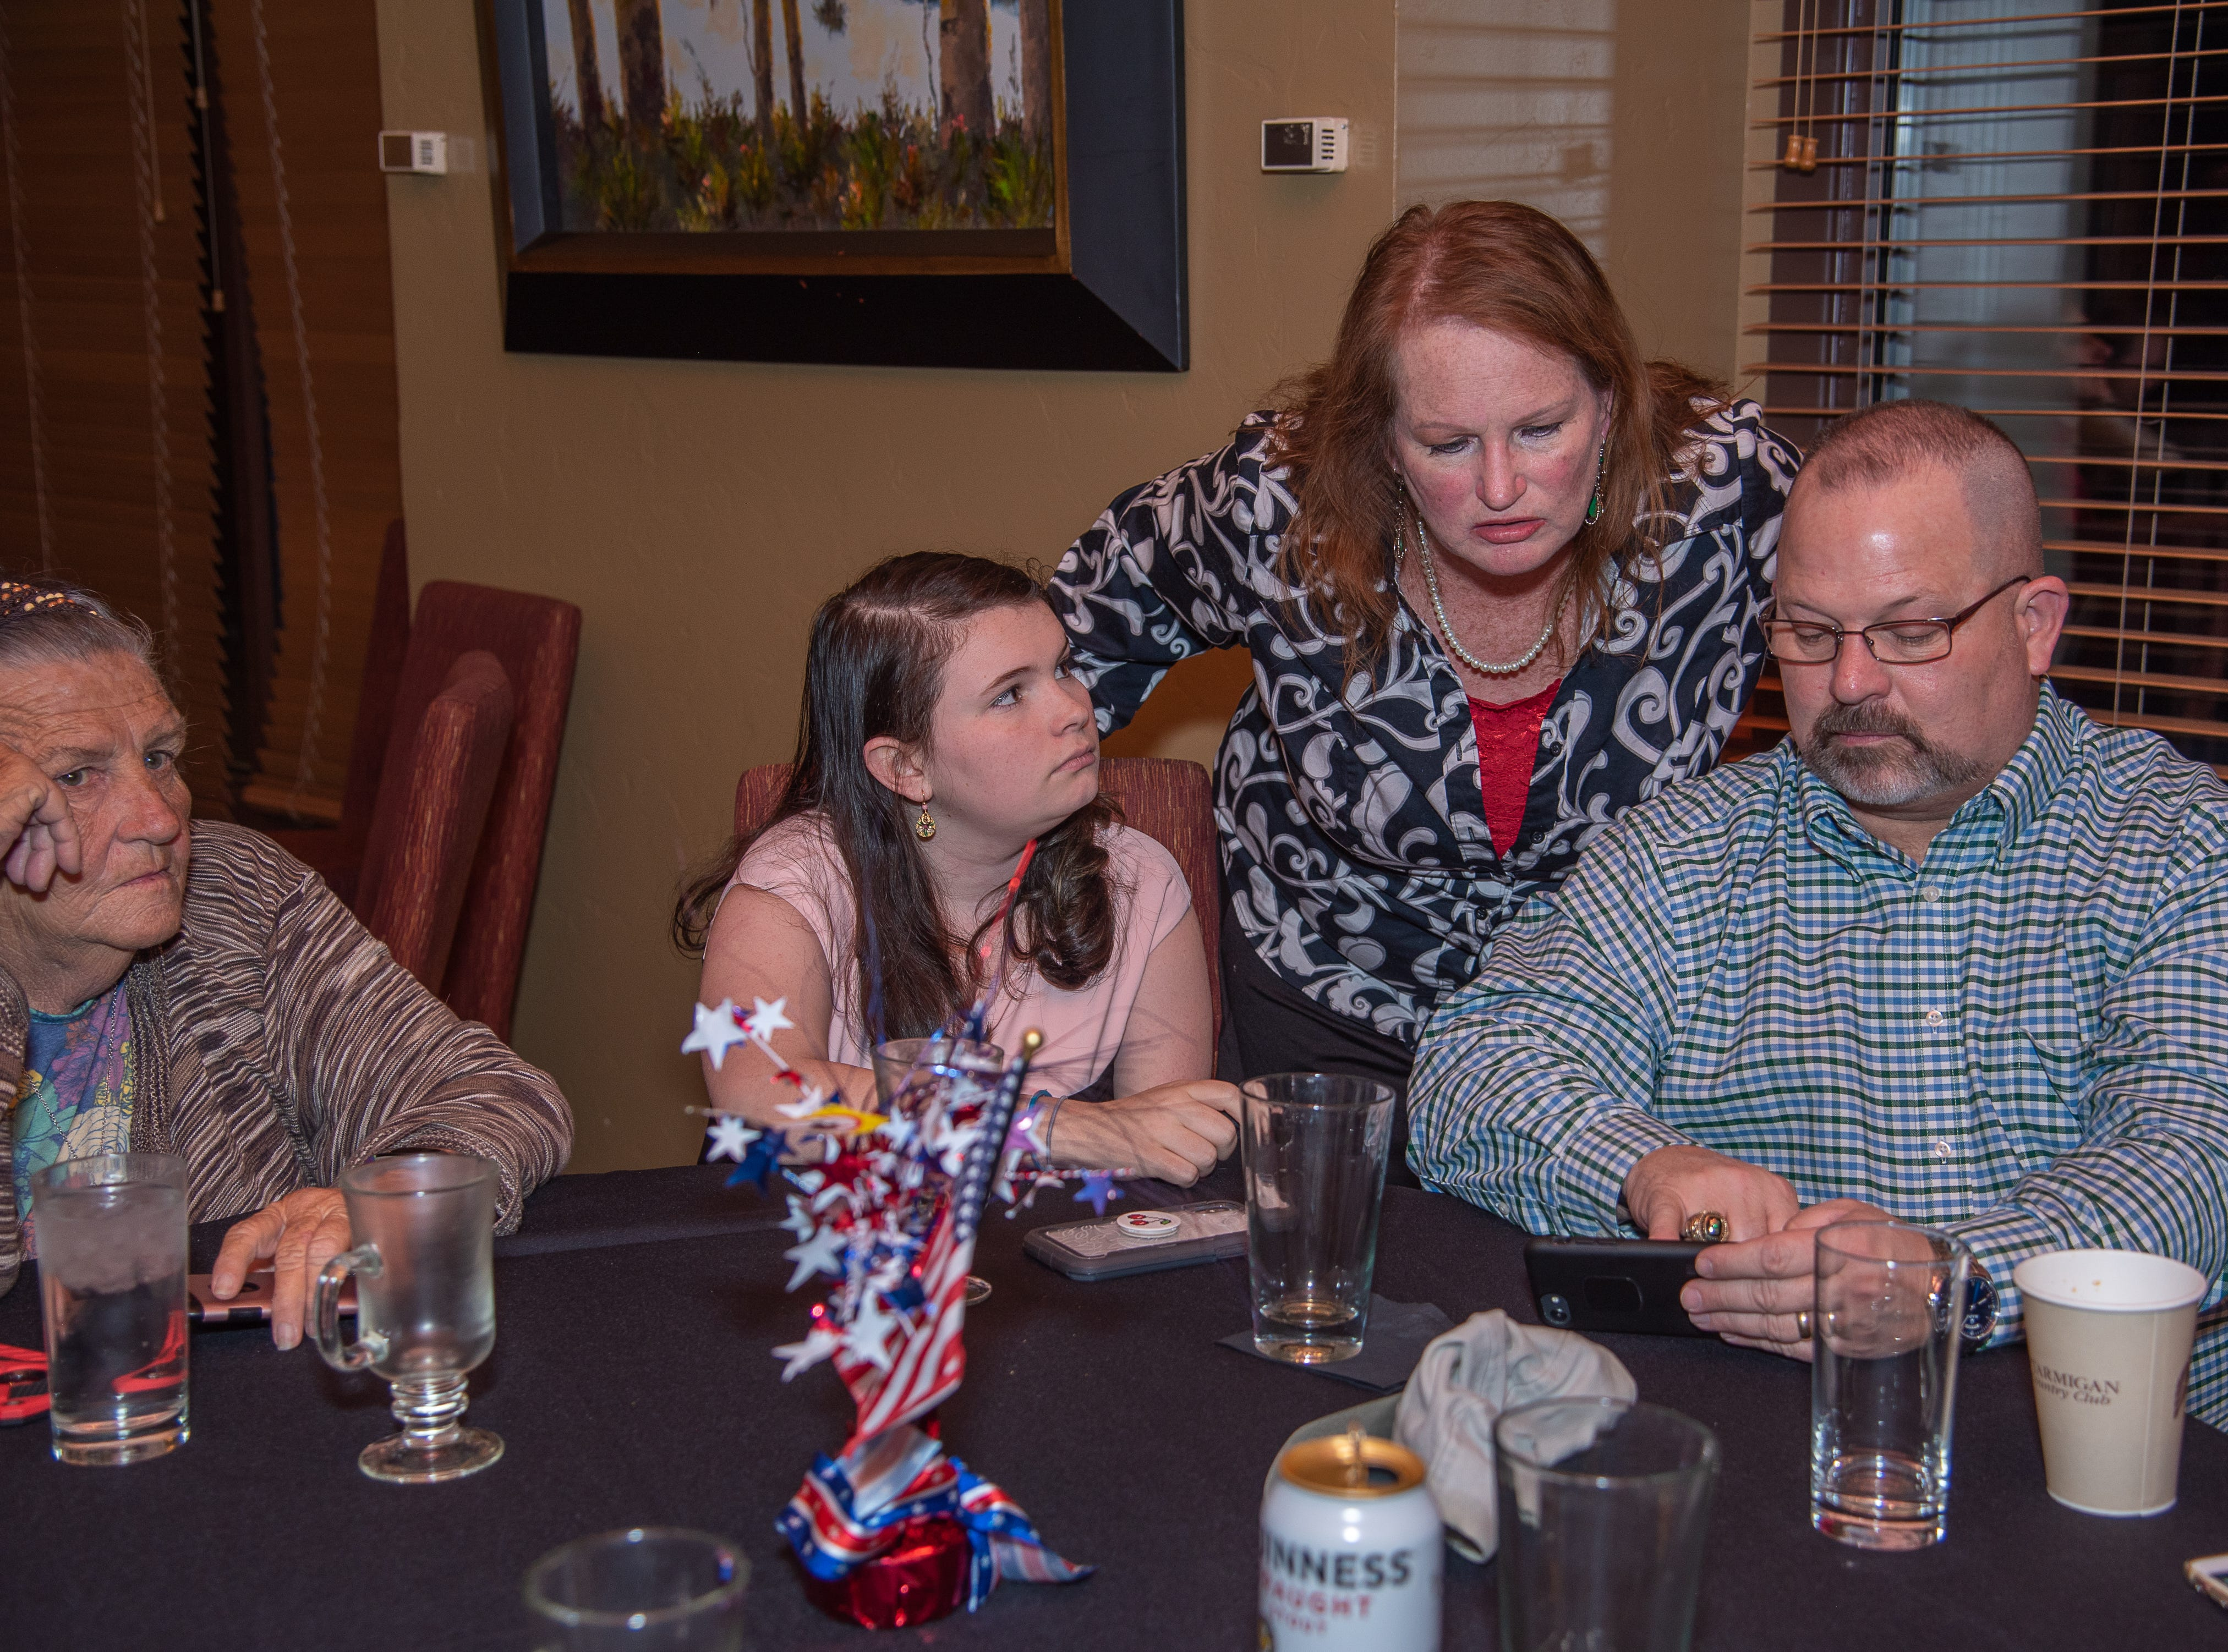 GOP assessor candidate Alexis Smith looks at early election results with family members at an election watch party on Tuesday, November 6, 2018, at Ptarmigan Country Club in Fort Collins, Colo.